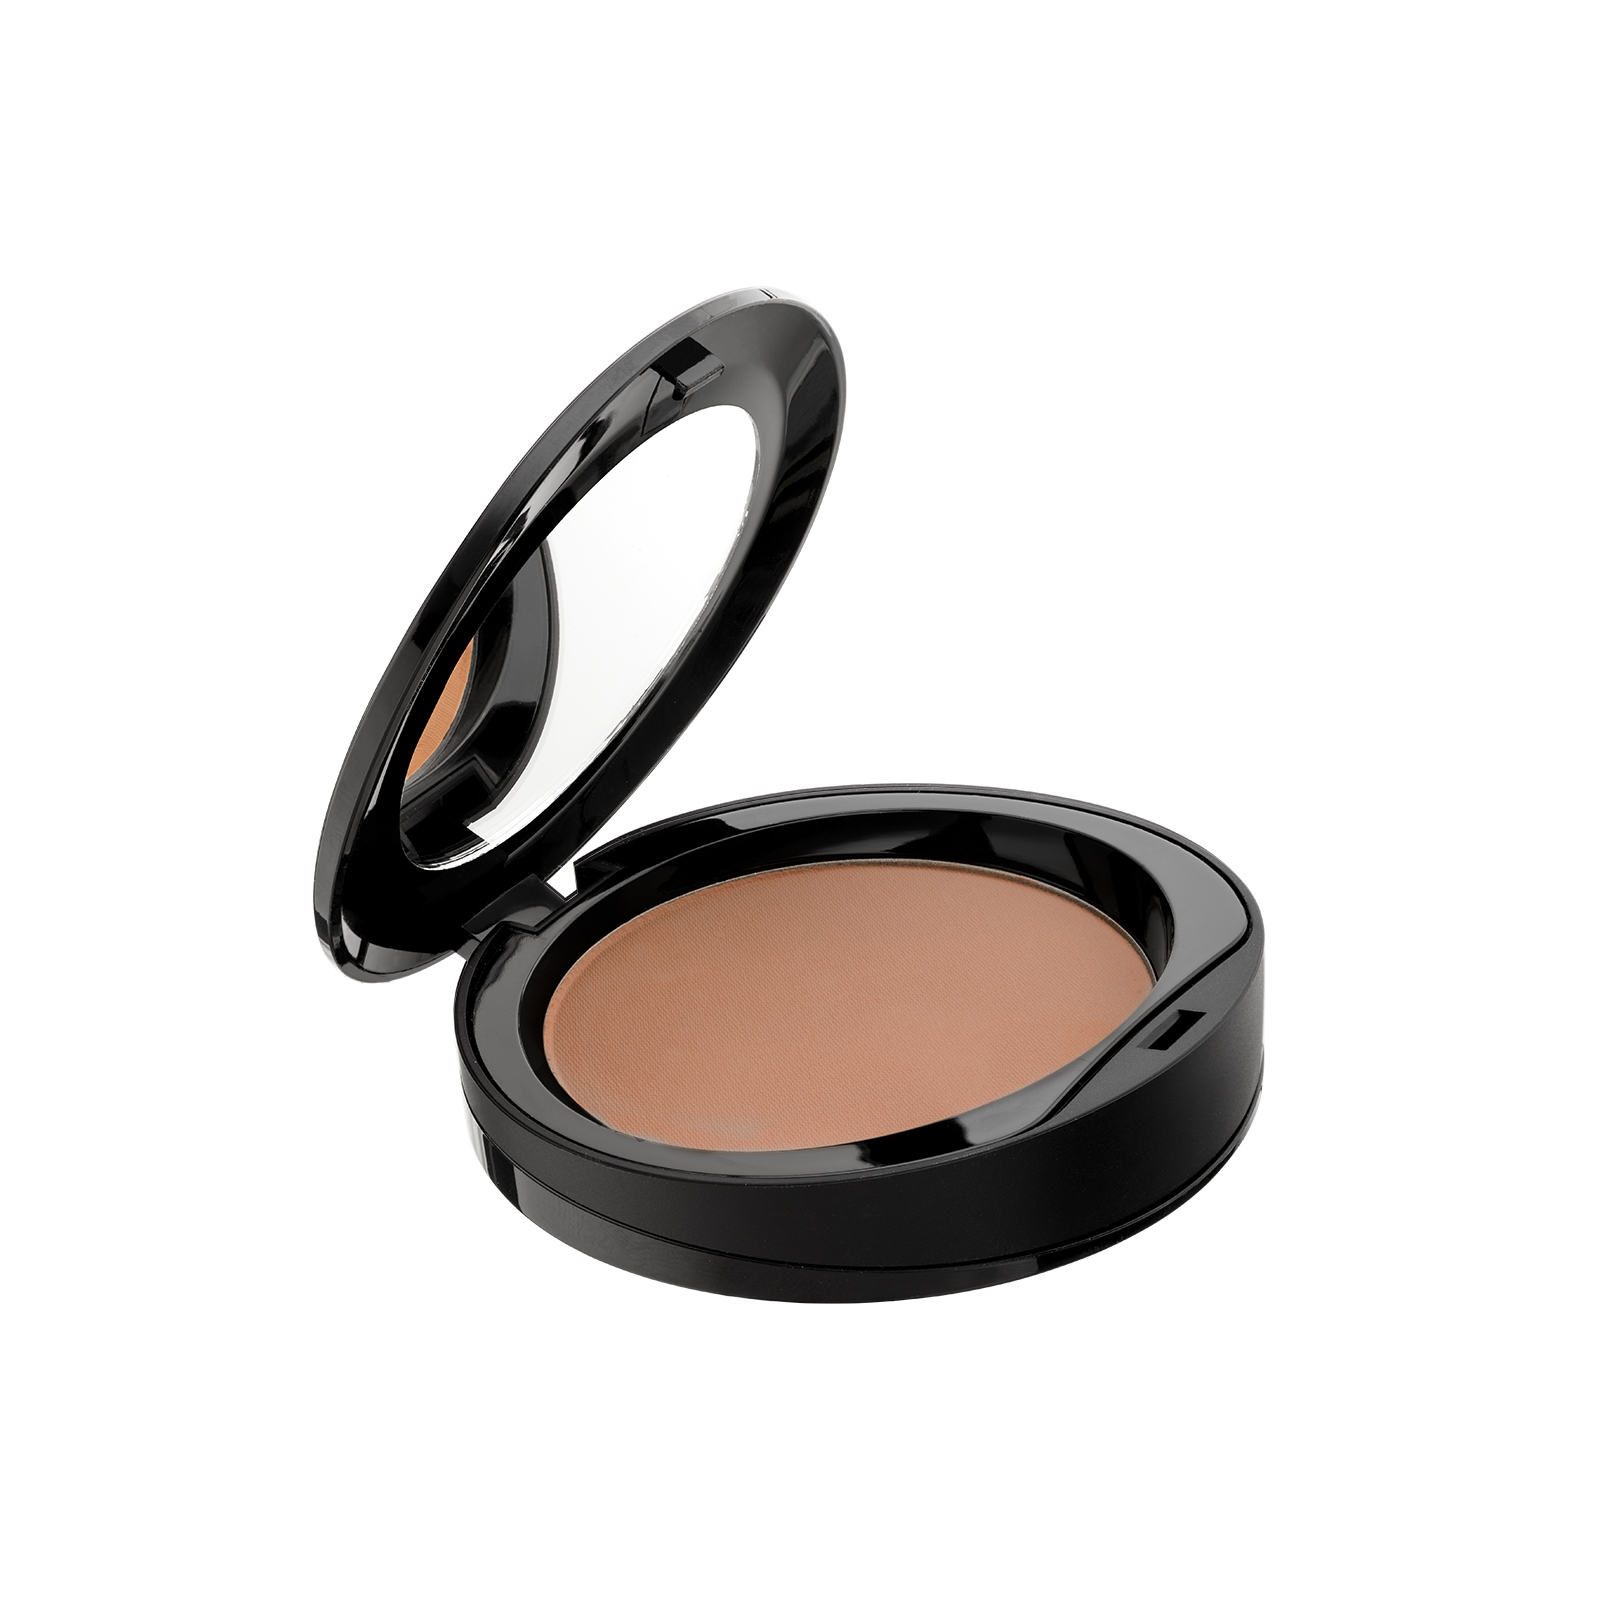 MAXI COVERAGE POWDER SPF 15 (09 Toffee)